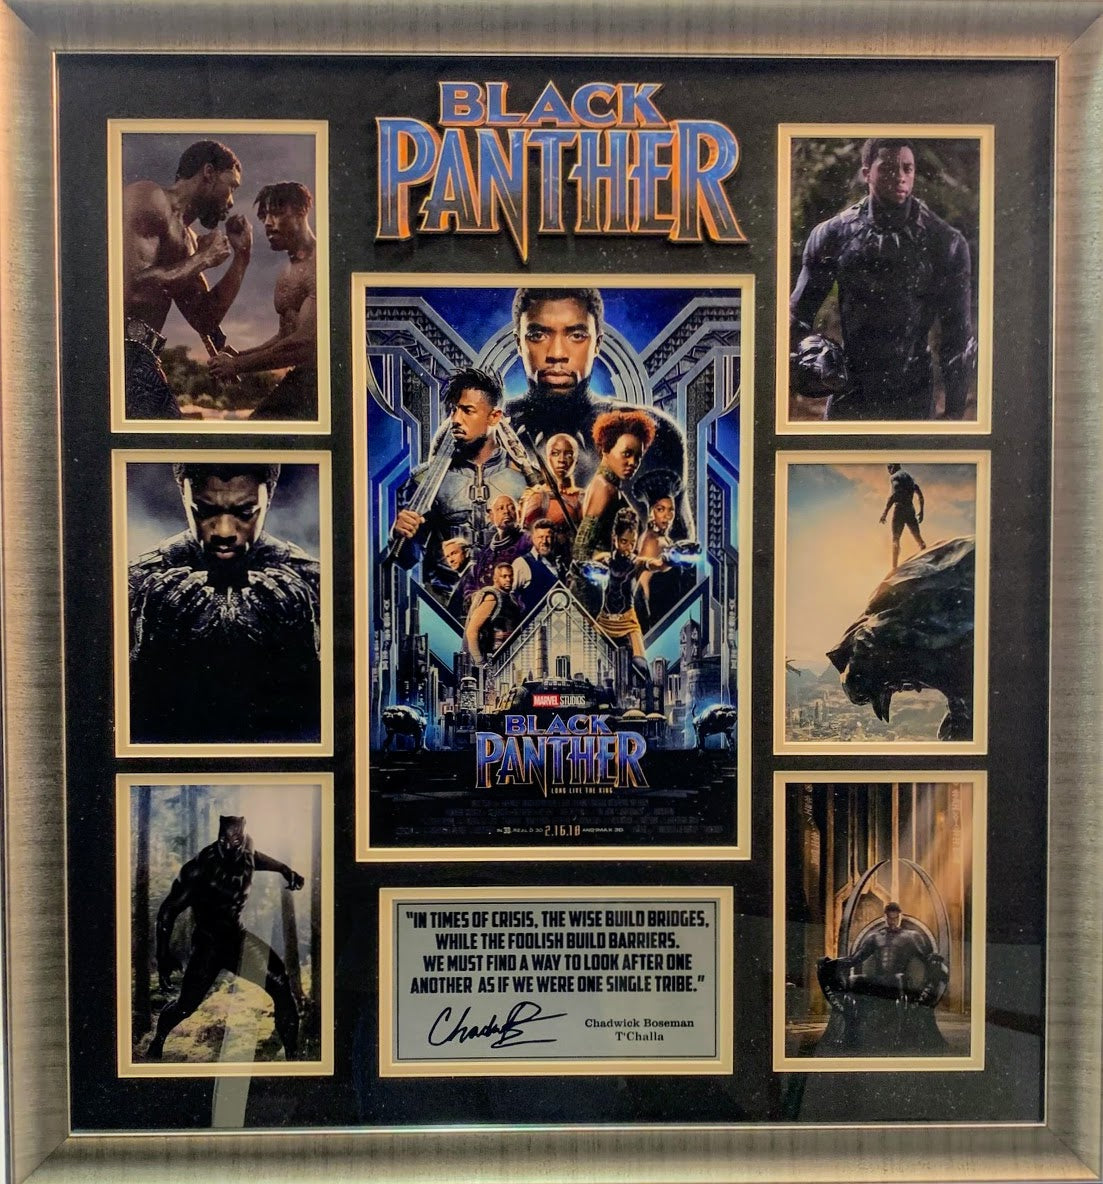 Black Panther Chadwick Boseman Framed College with Laser Signature and Quote